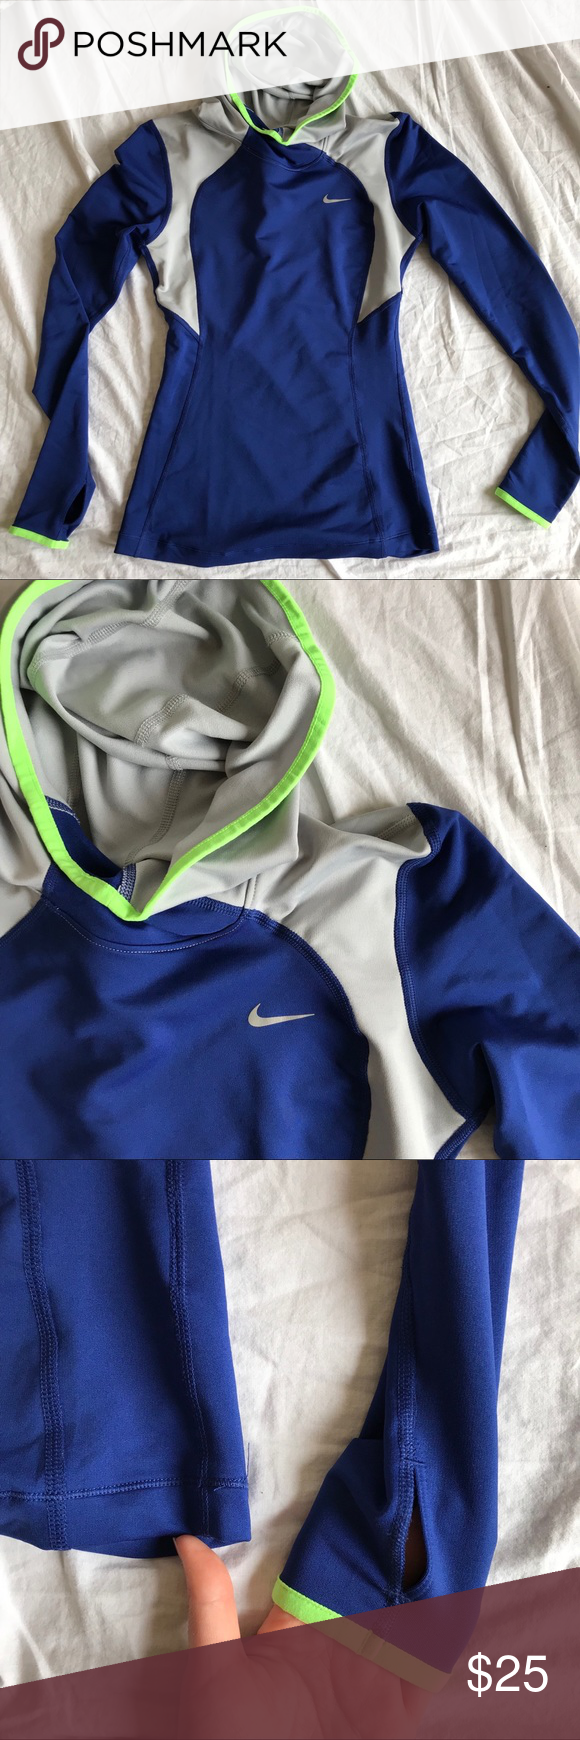 nike running hoodie super stretchy breathable material with a cowl neck hood and neon green piping. this is such a staple for workouts, it's very good quality. no flaws, just need room in my closet. make me an offer <3 Nike Tops Sweatshirts & Hoodies